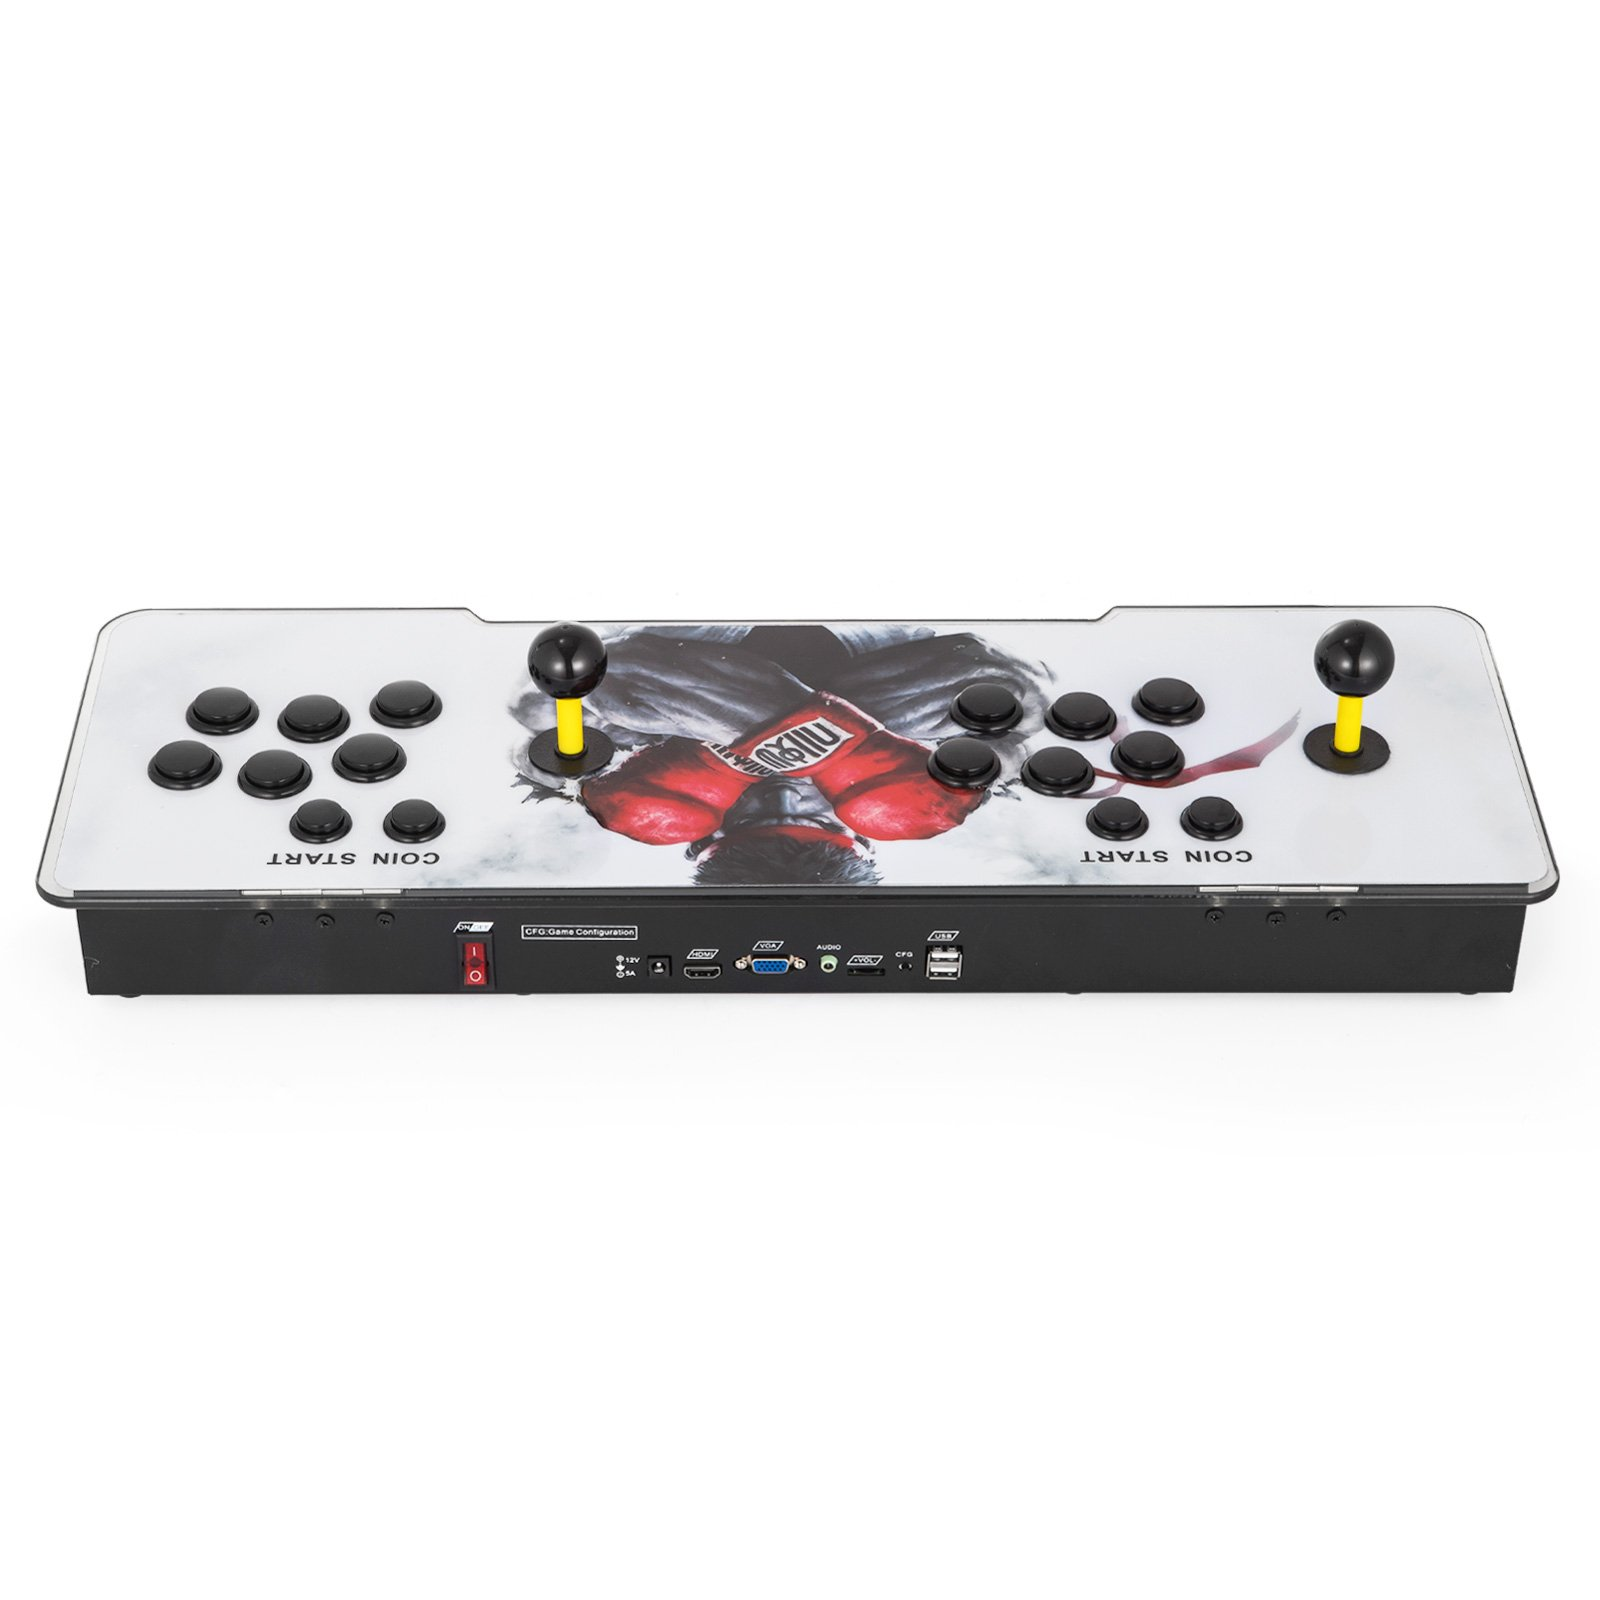 Happybuy Video Game Console, Arcade Machine Over 1500 Latest Classic Games, 2 Players Pandora's Box 9S Multiplayer Home Arcade Console Games All in 1 Non-Jamma PCB Double Stick Newest Design Power HDM by Happybuy (Image #5)